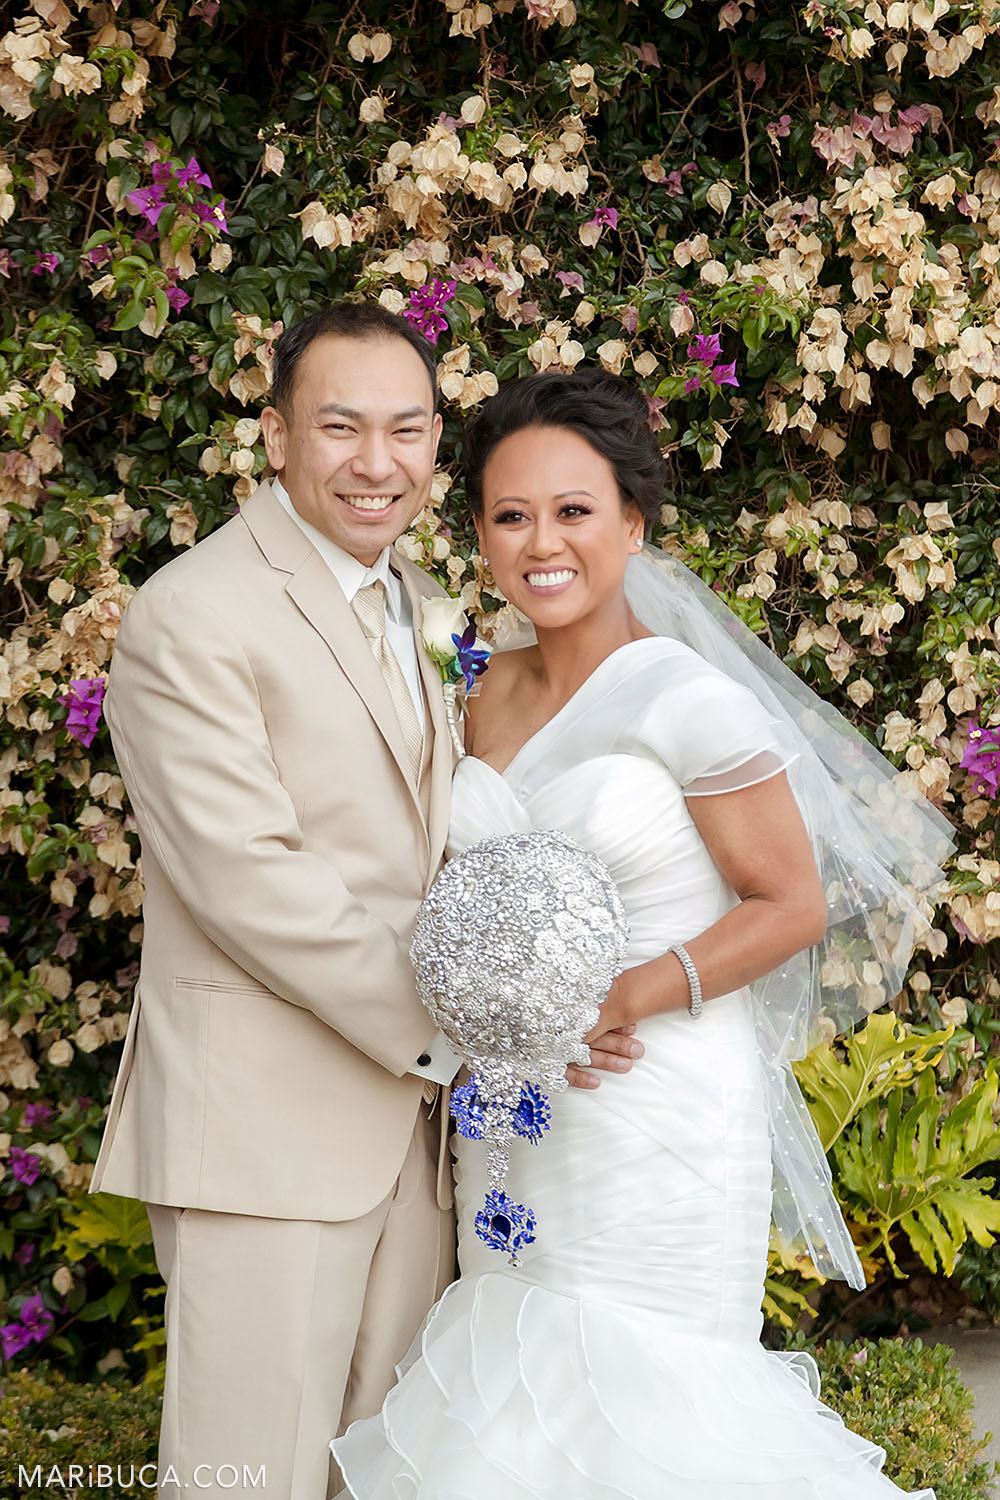 bride and groom stand in an embrace and smile surrounded by flowers